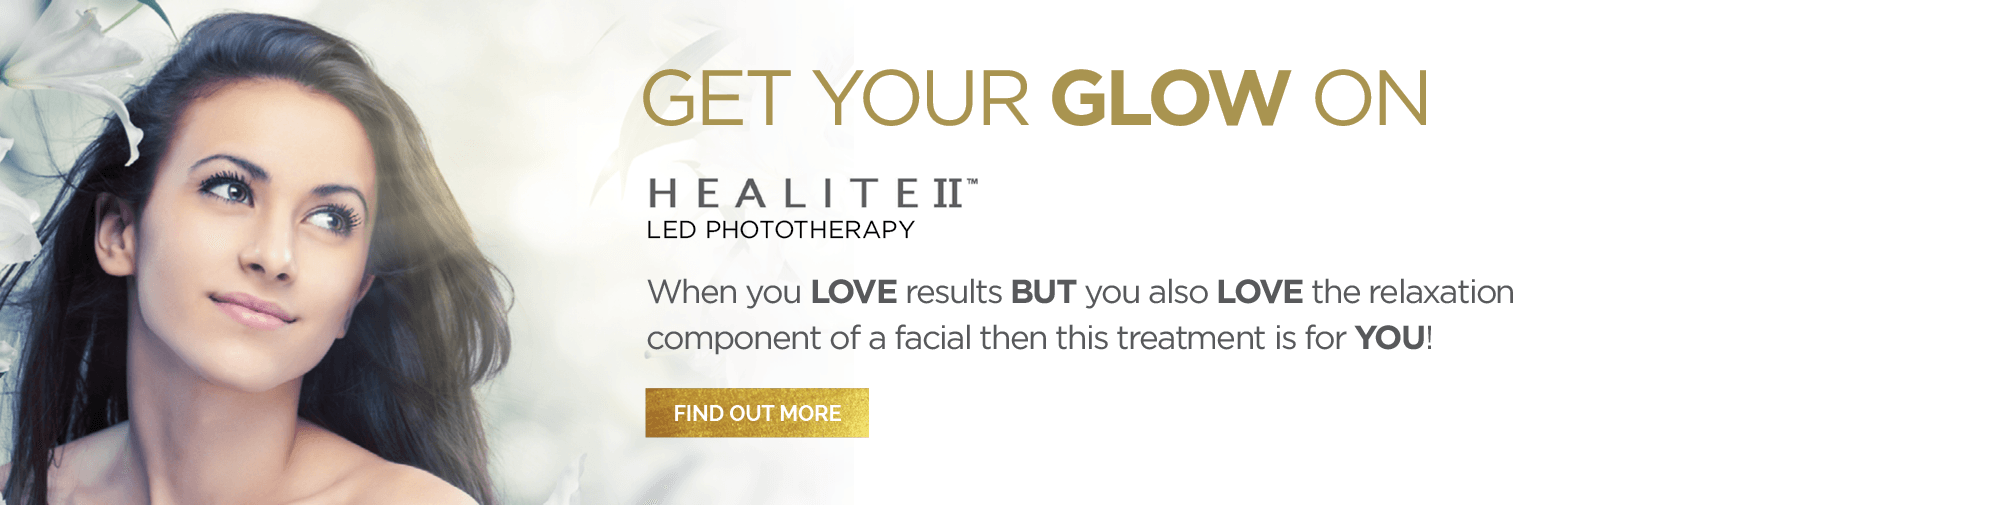 Healite II led phototherapy august 2018 special